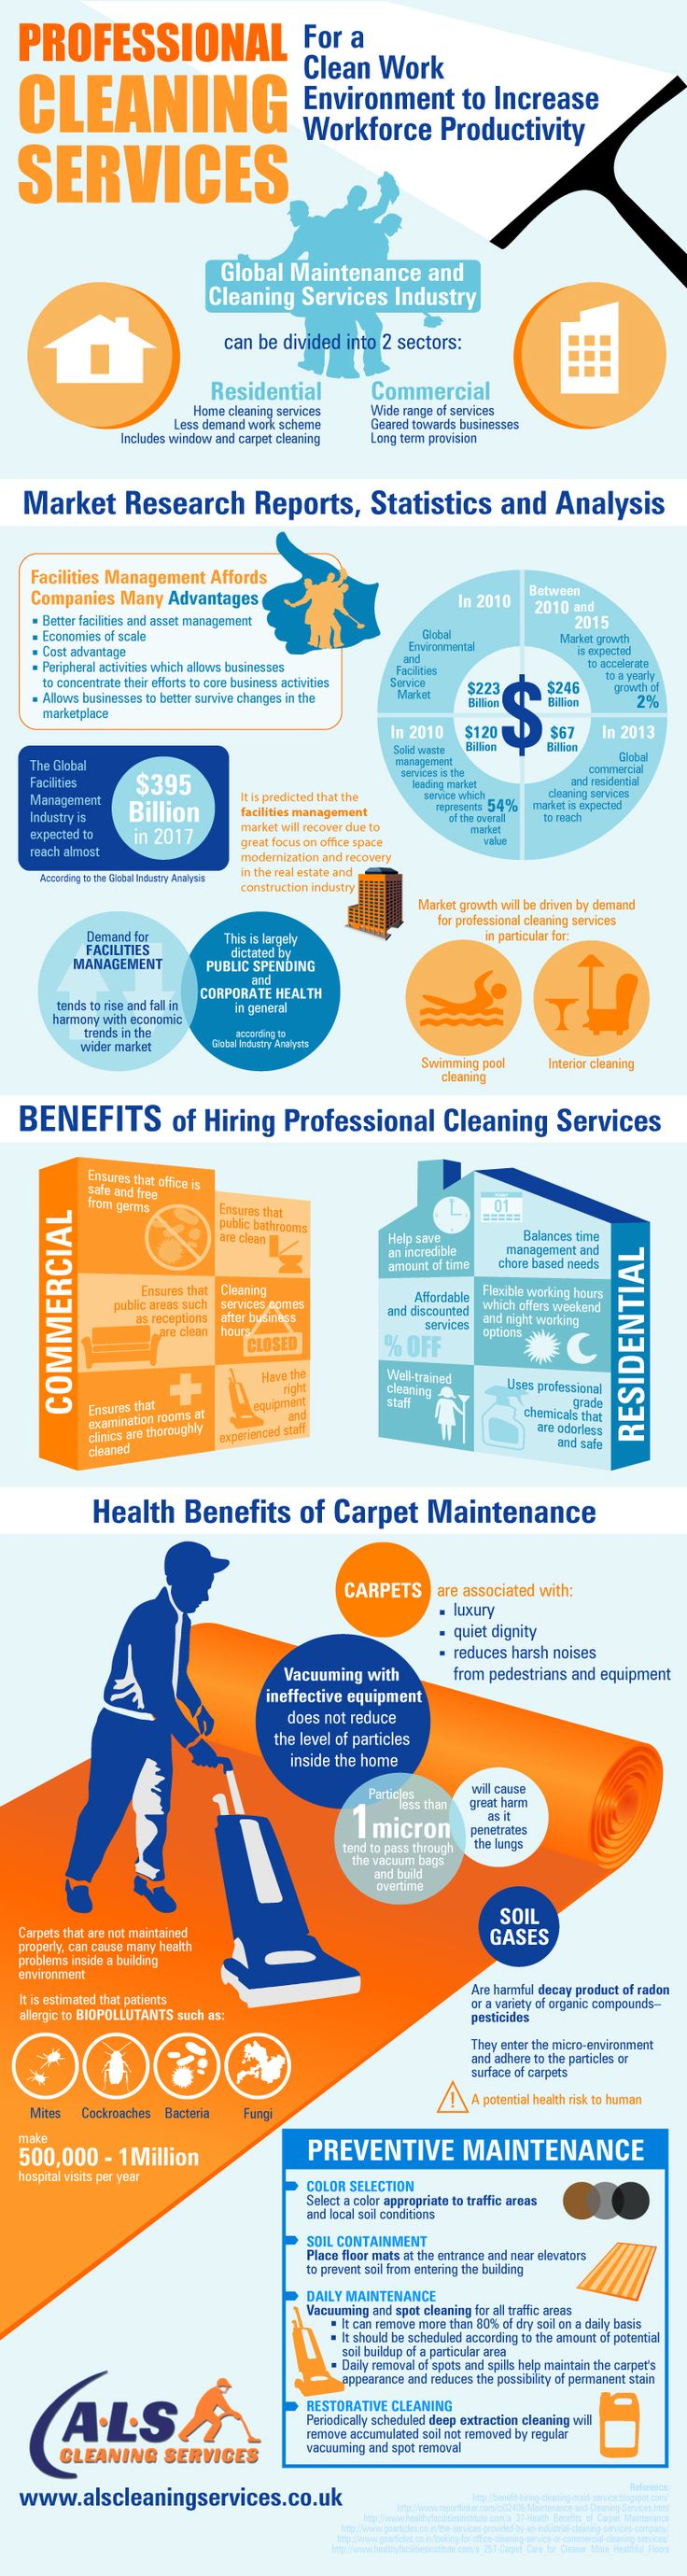 17 best ideas about professional cleaning services professional cleaning services for a clean work environment to increase workforce productivity